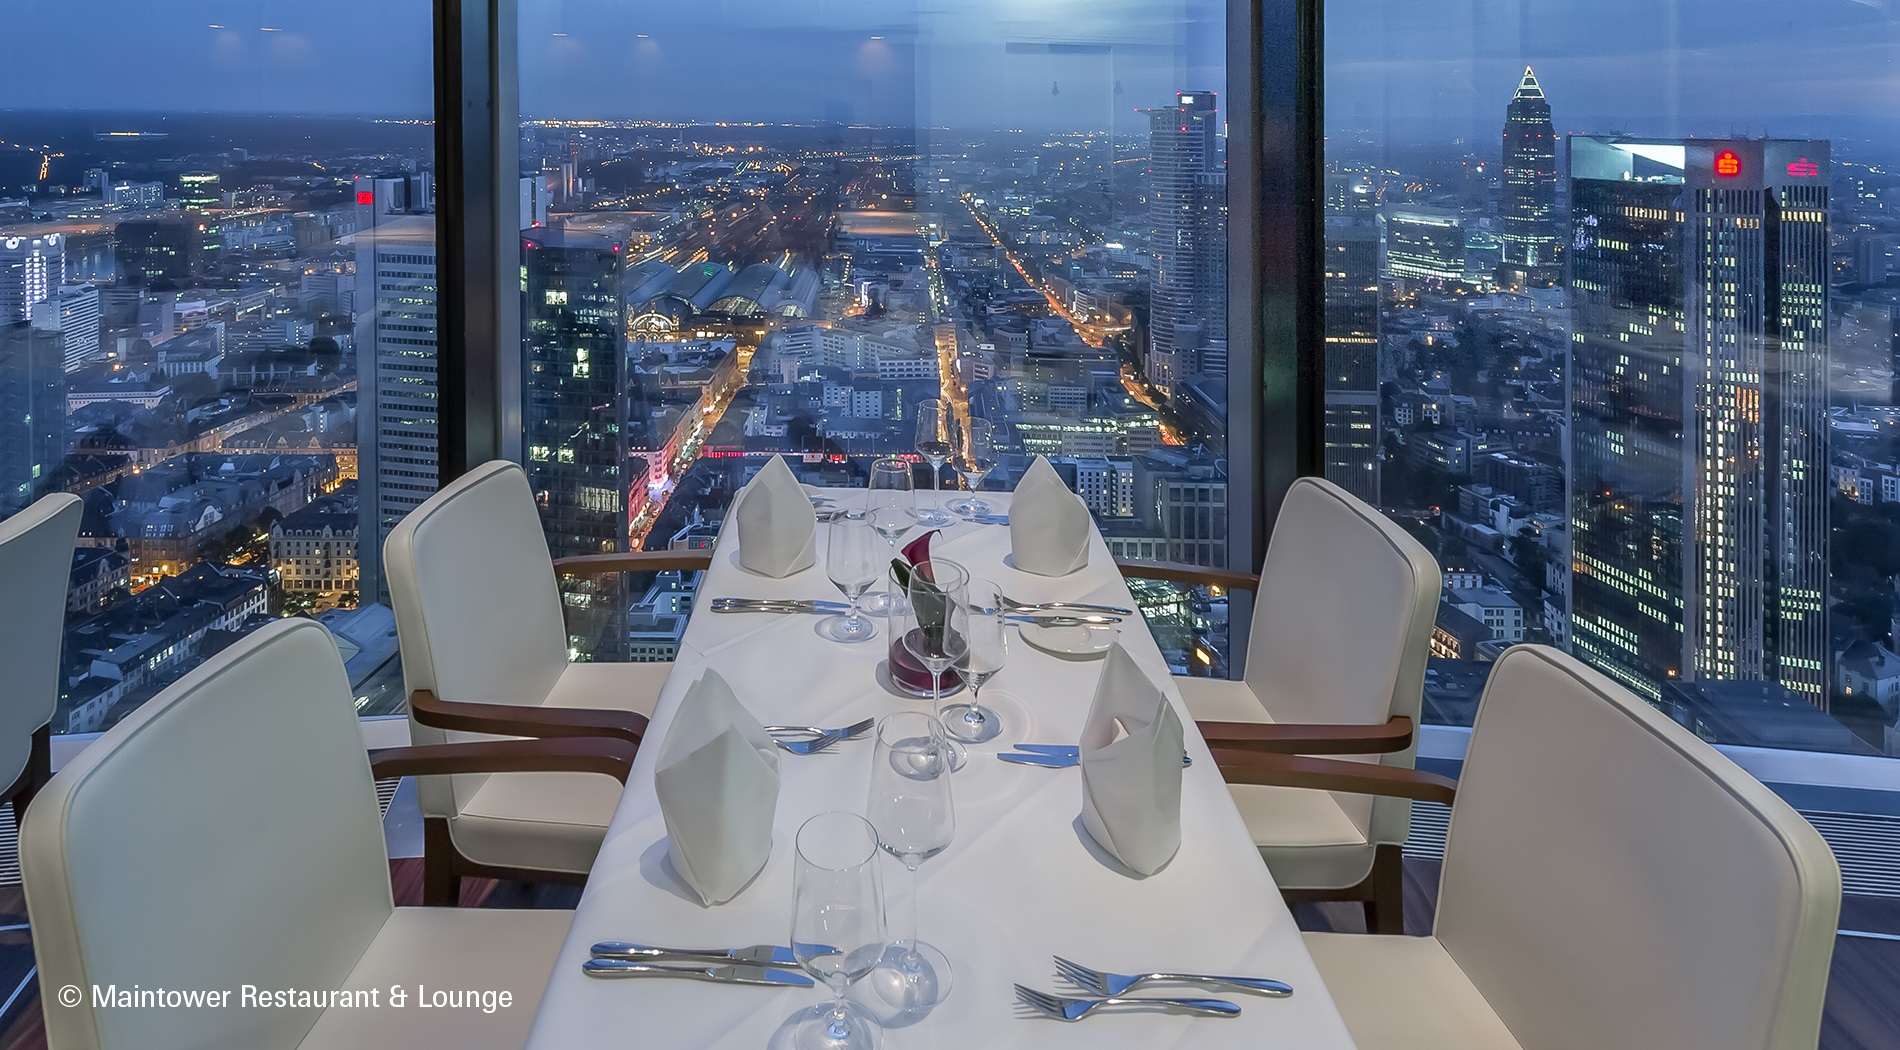 Maintower Restaurant & Lounge